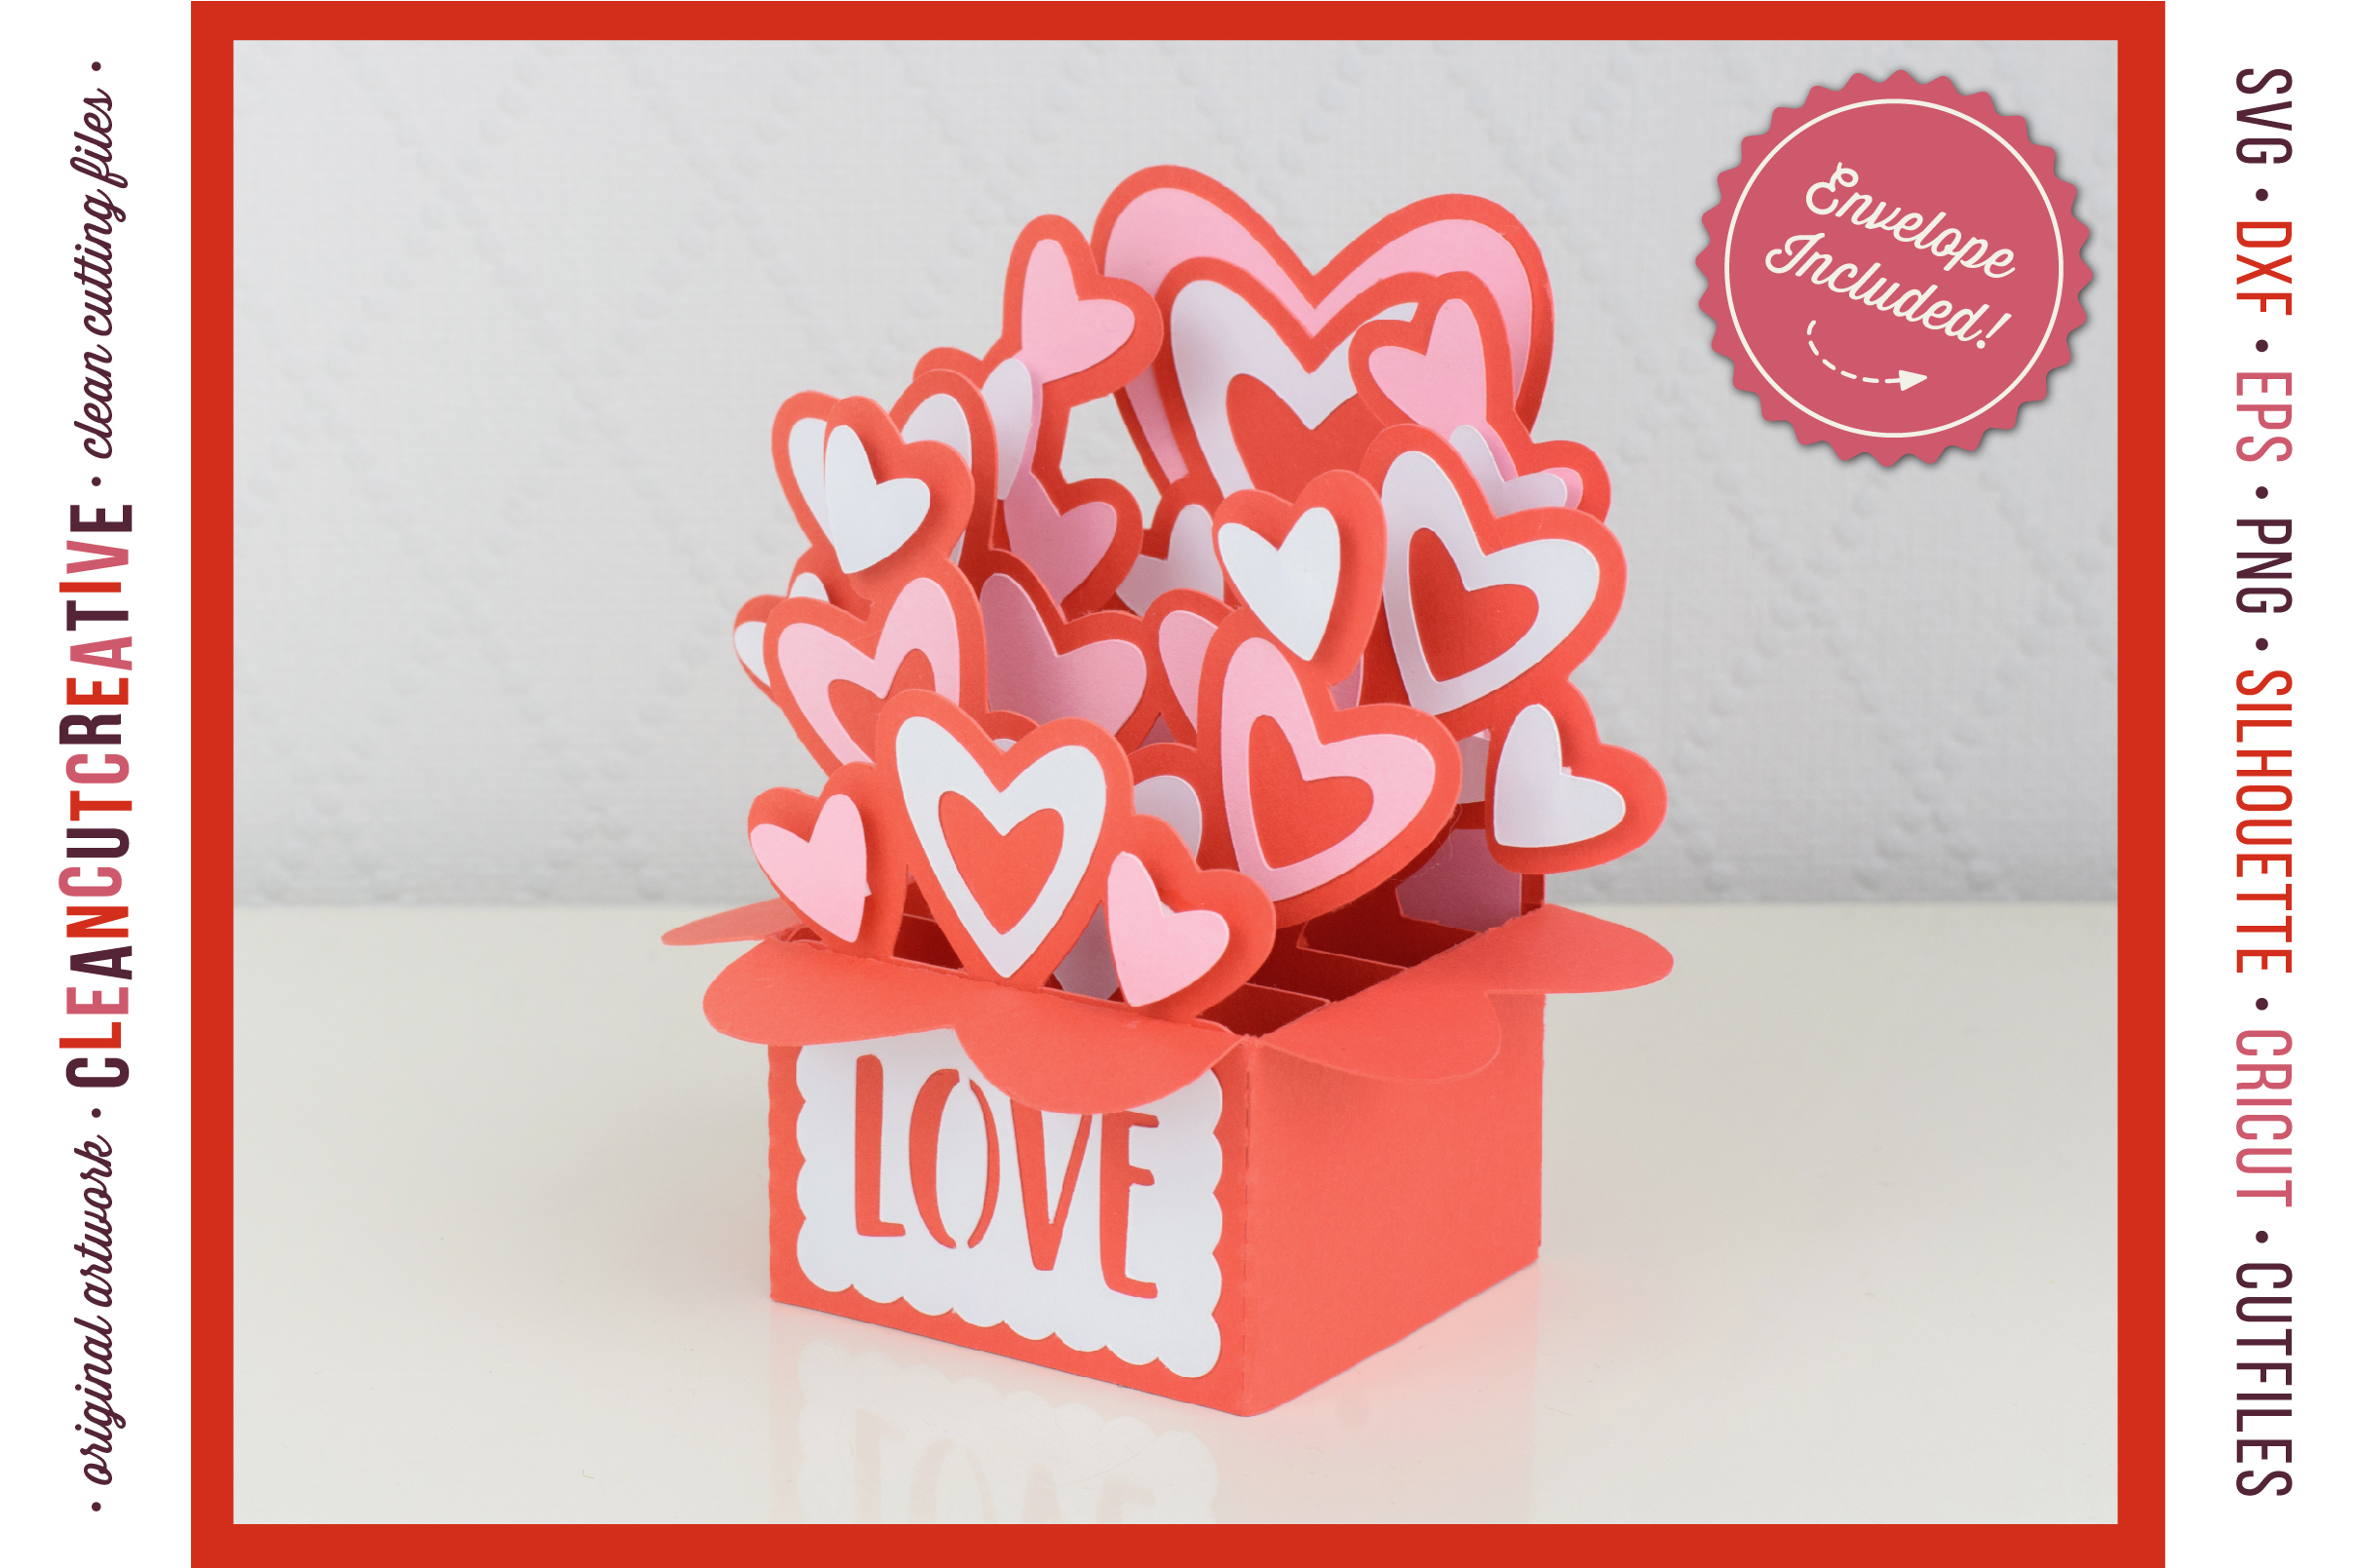 Love Box Card Valentine Card in a Box with cute hearts - SVG DXF EPS PNG - for Cricut & Silhouette - clean cutting files example image 3